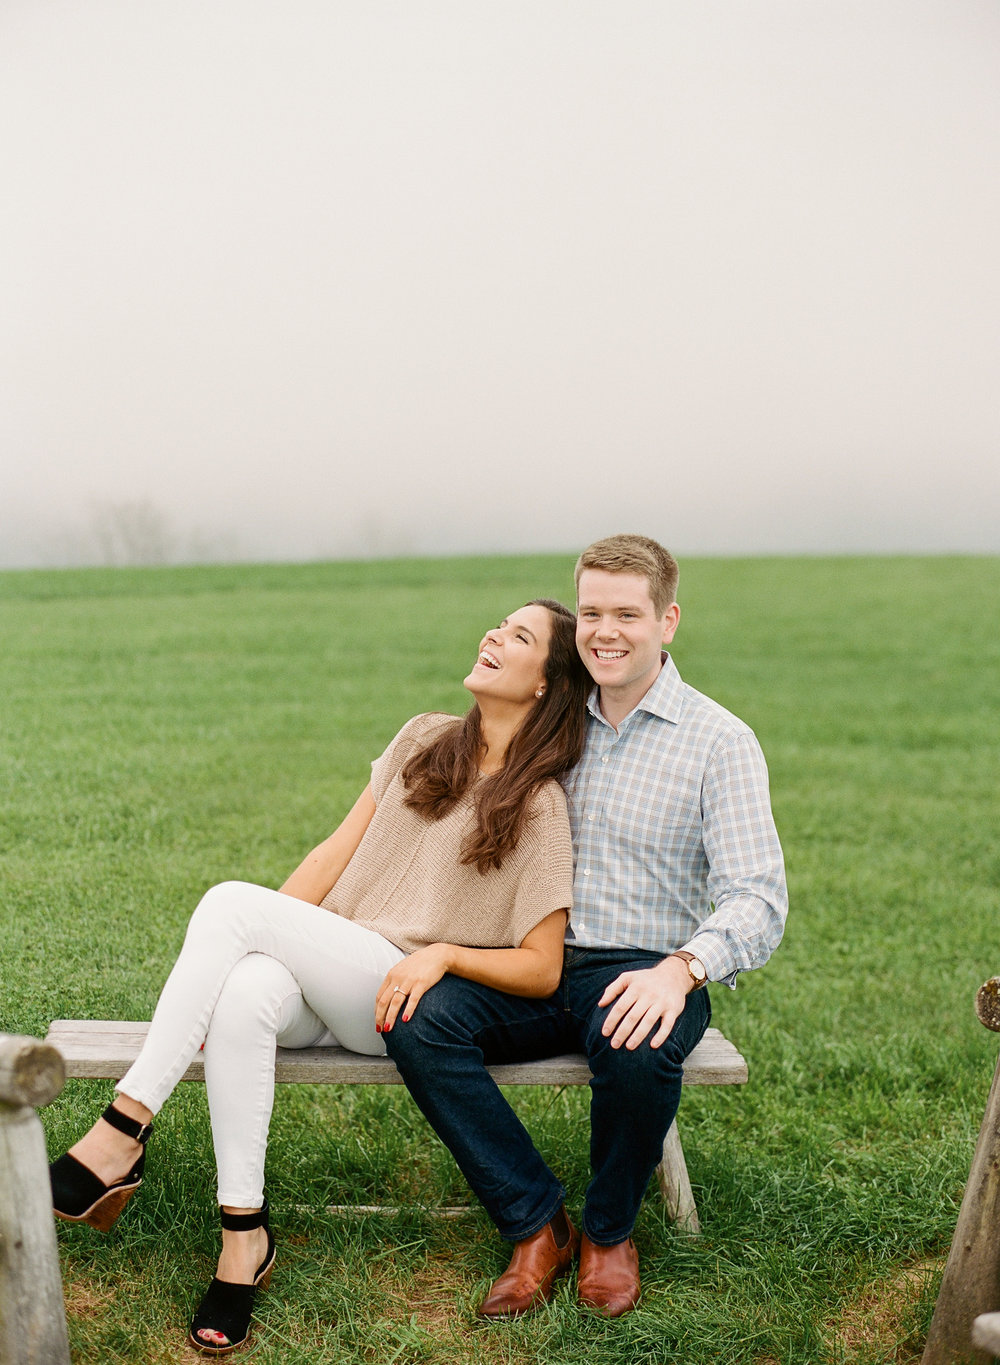 Virginia Engagement Photos,  Virginia Wedding Photographer,  Blue Ridge Parkway Engagement Pictures,  What to Wear for Engagement photos,  Engagement Photo Outfits,  Virginia Film Photographer,  Casual Engagements Photo Outfits,  Causal Engagement Outfits,  Richmond Wedding Photographer,  Alexandria Wedding Photographer